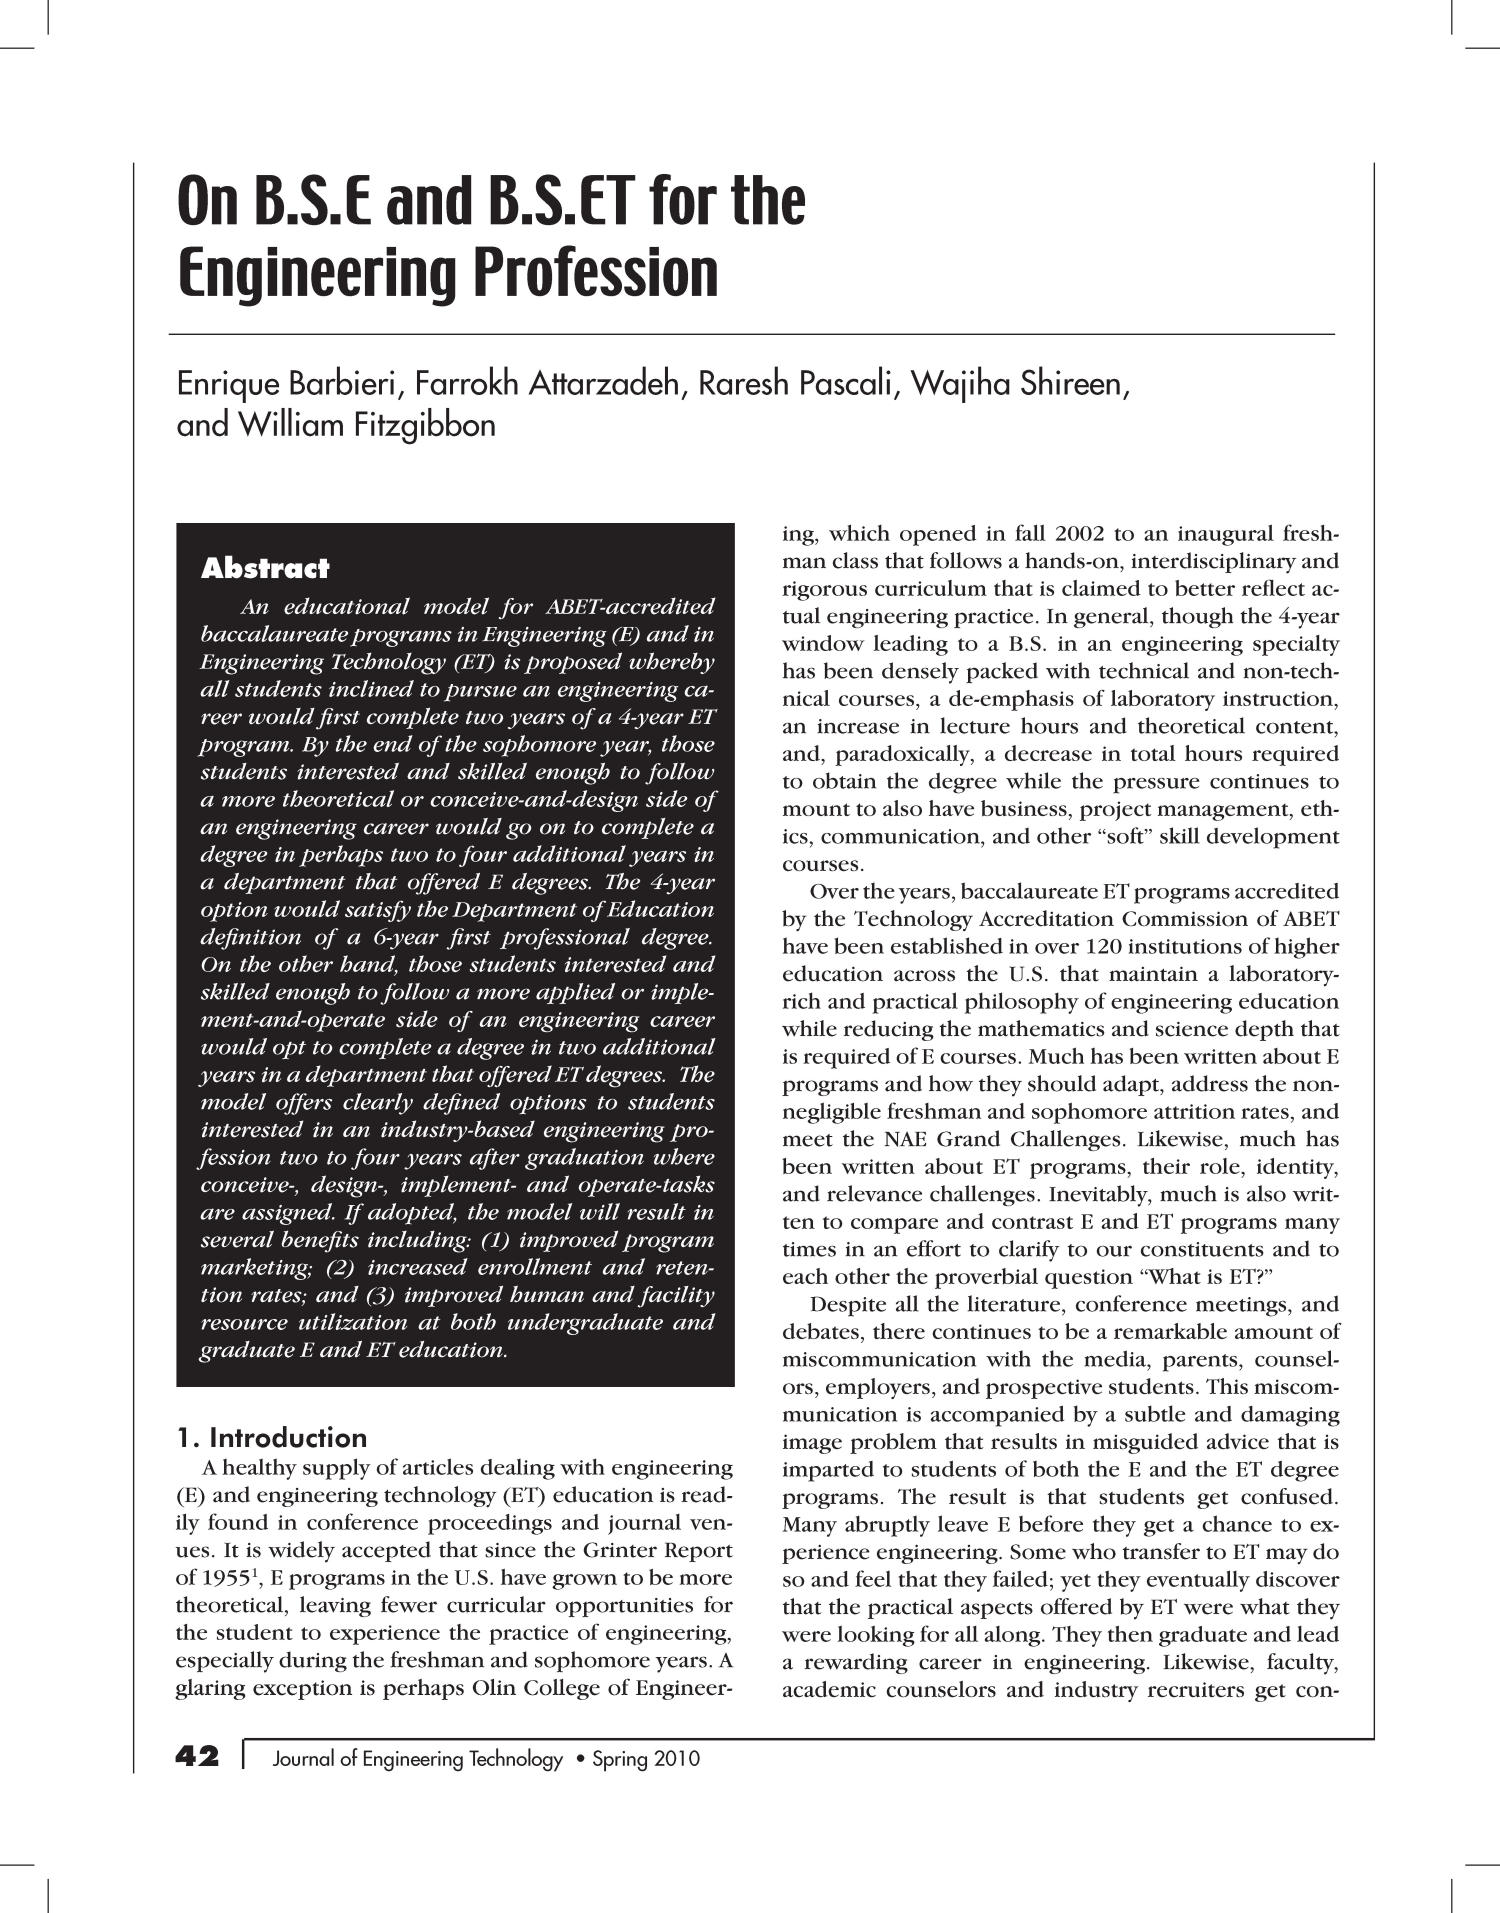 On B.S.E and B.S.ET for the Engineering Profession                                                                                                      42